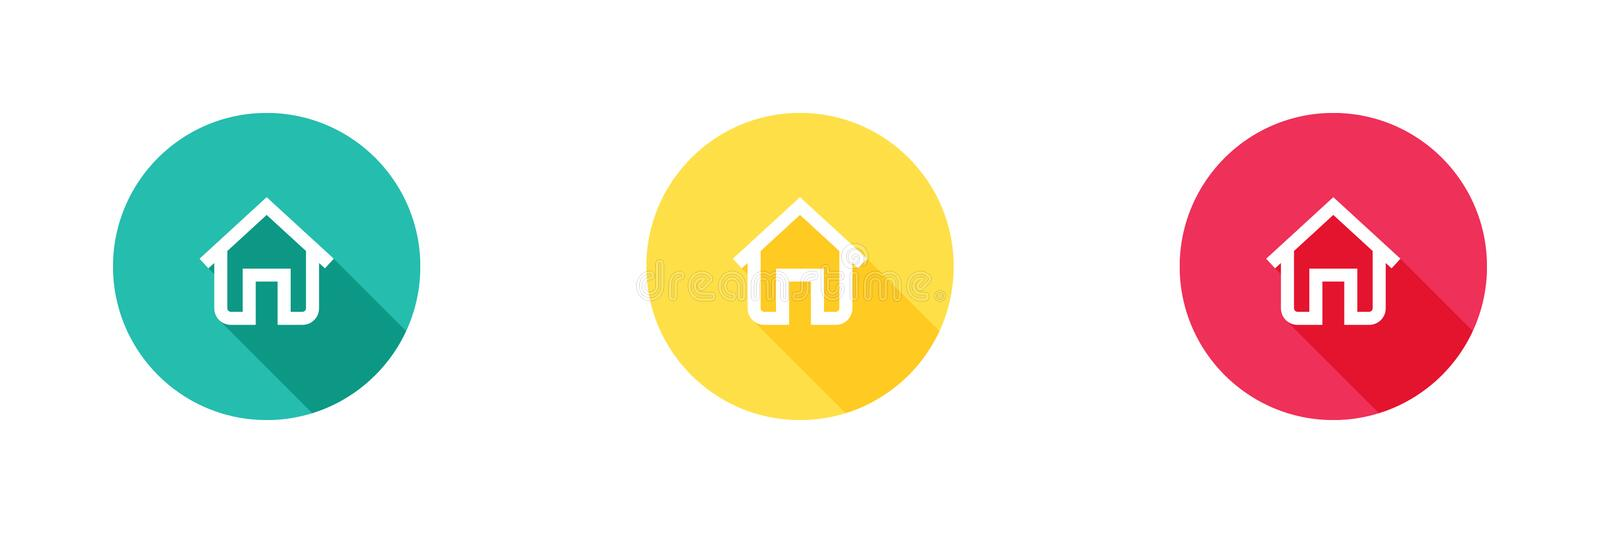 Home icon in green yellow and red background with long shadow effect, house symbol. Simple, flat design, Solid/glyph icons style vector illustration